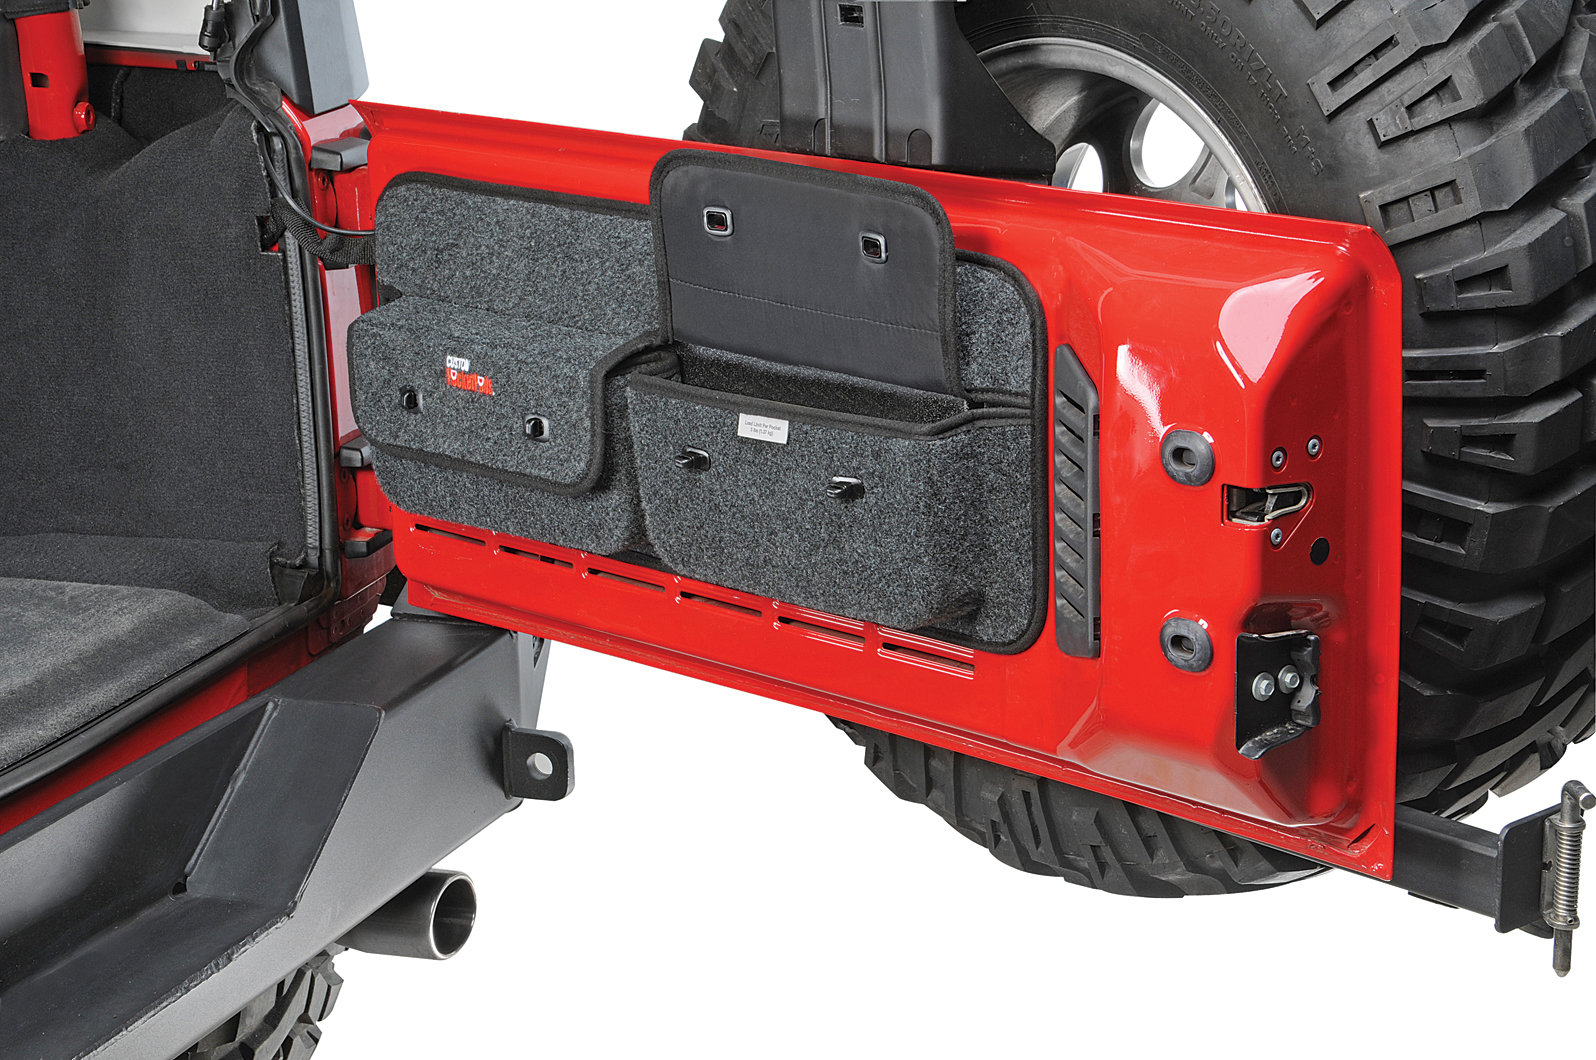 2013 Jeep Wrangler Unlimited Wiring Diagram Covercraft To1019ch Tailgate Pocket Pods For 07 14 Jeep